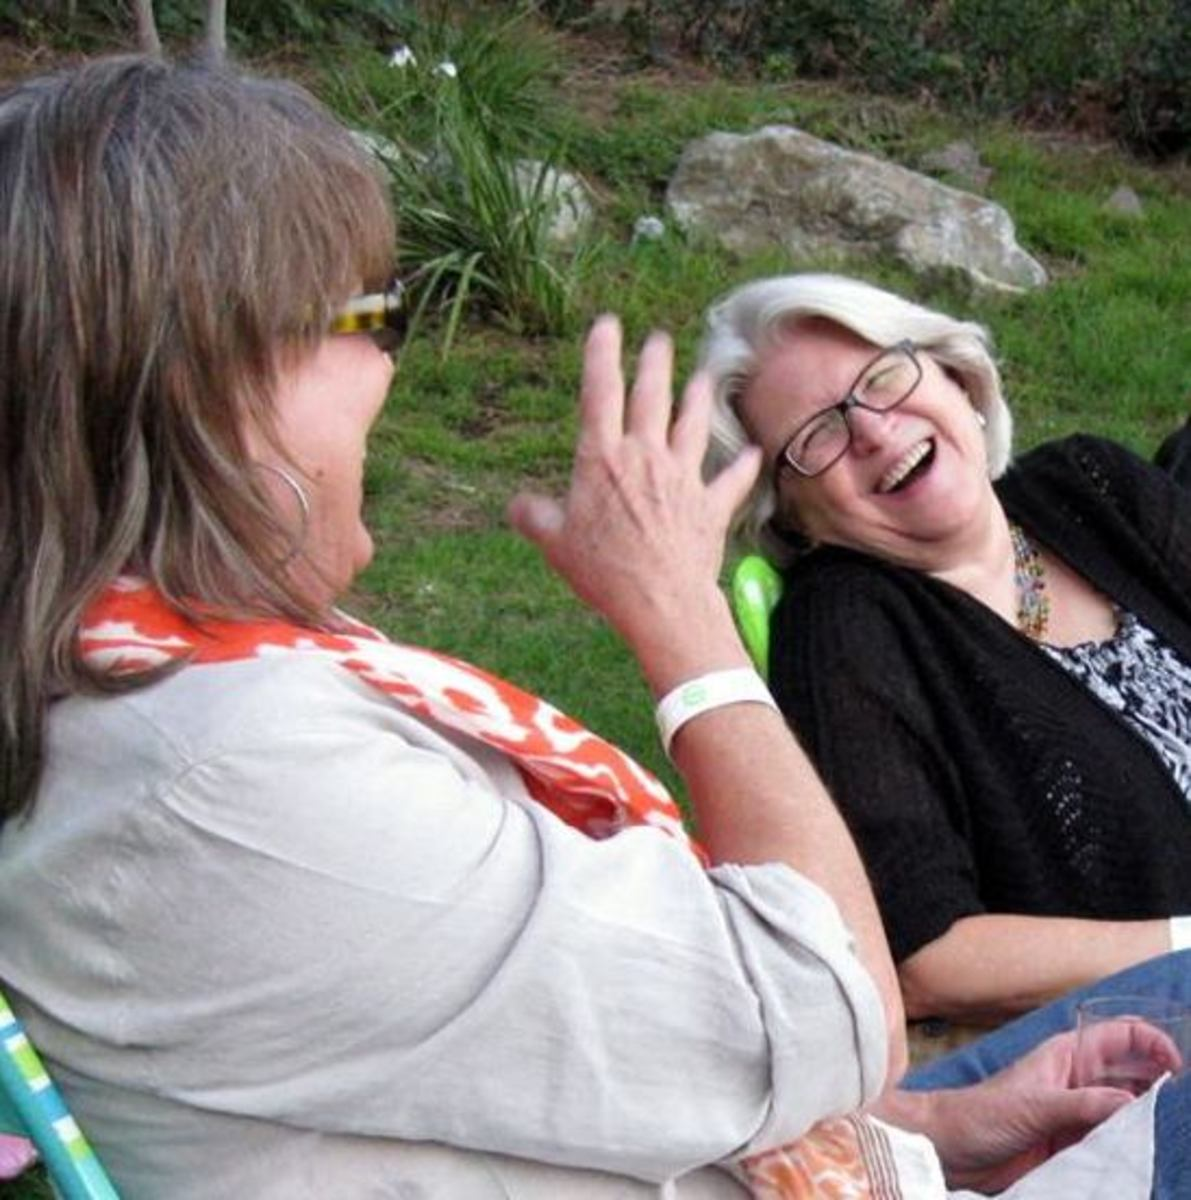 Laughter and companionship are keys to well-being and longevity.